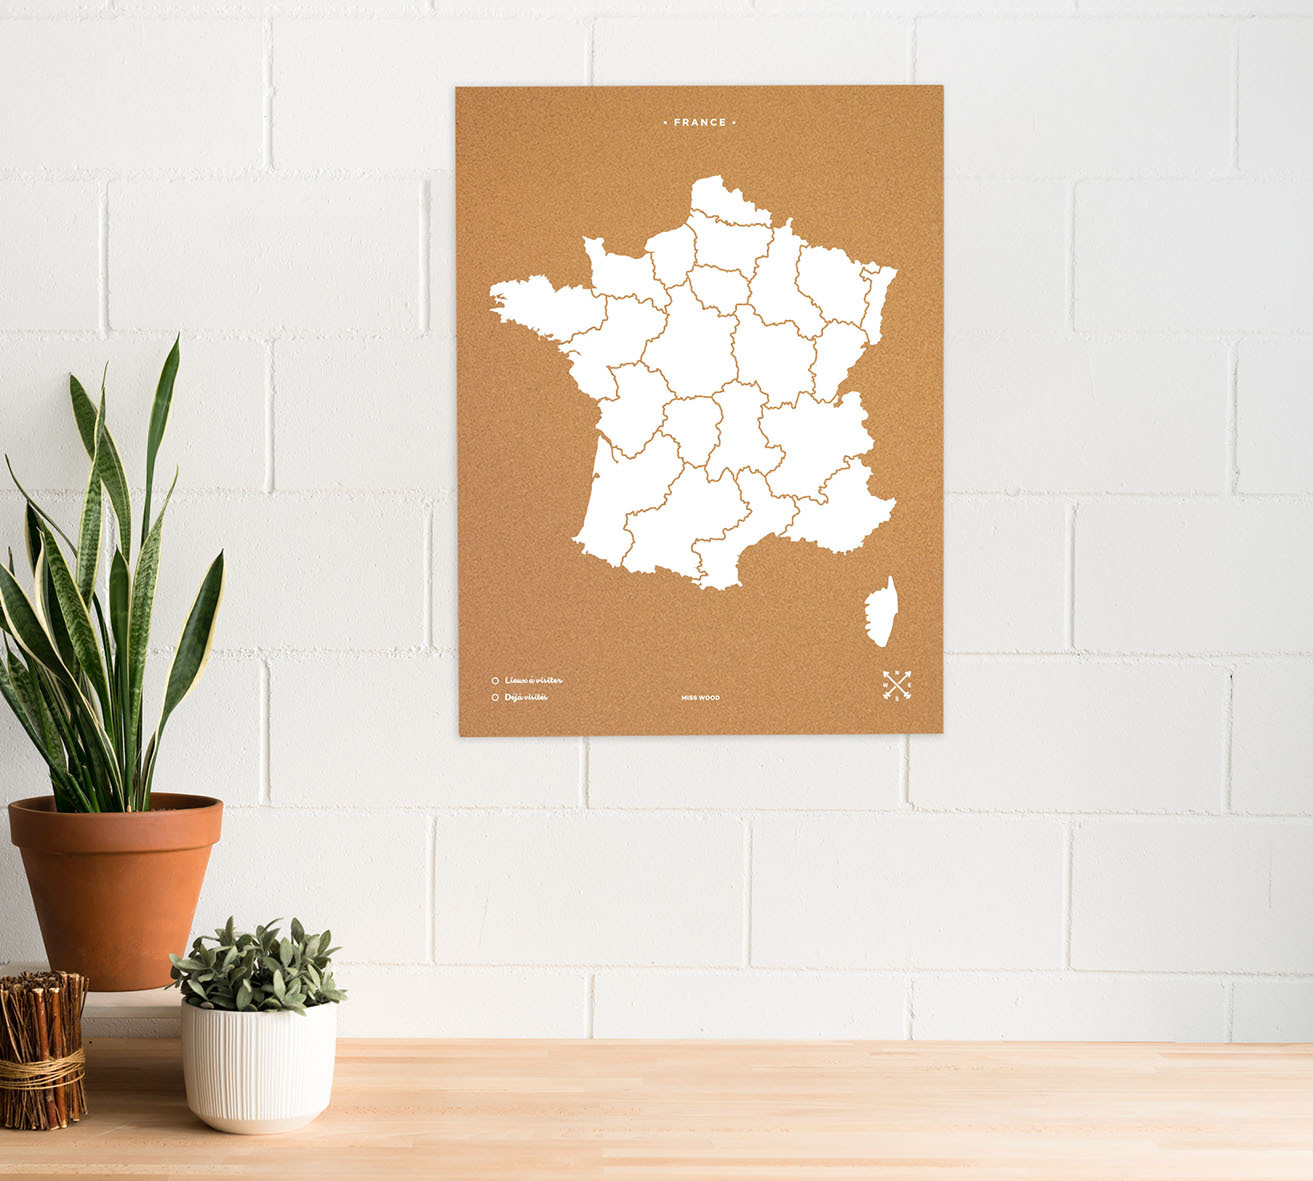 WOODY MAP XL - FRANCE BLANC 90 CM X 60 CM